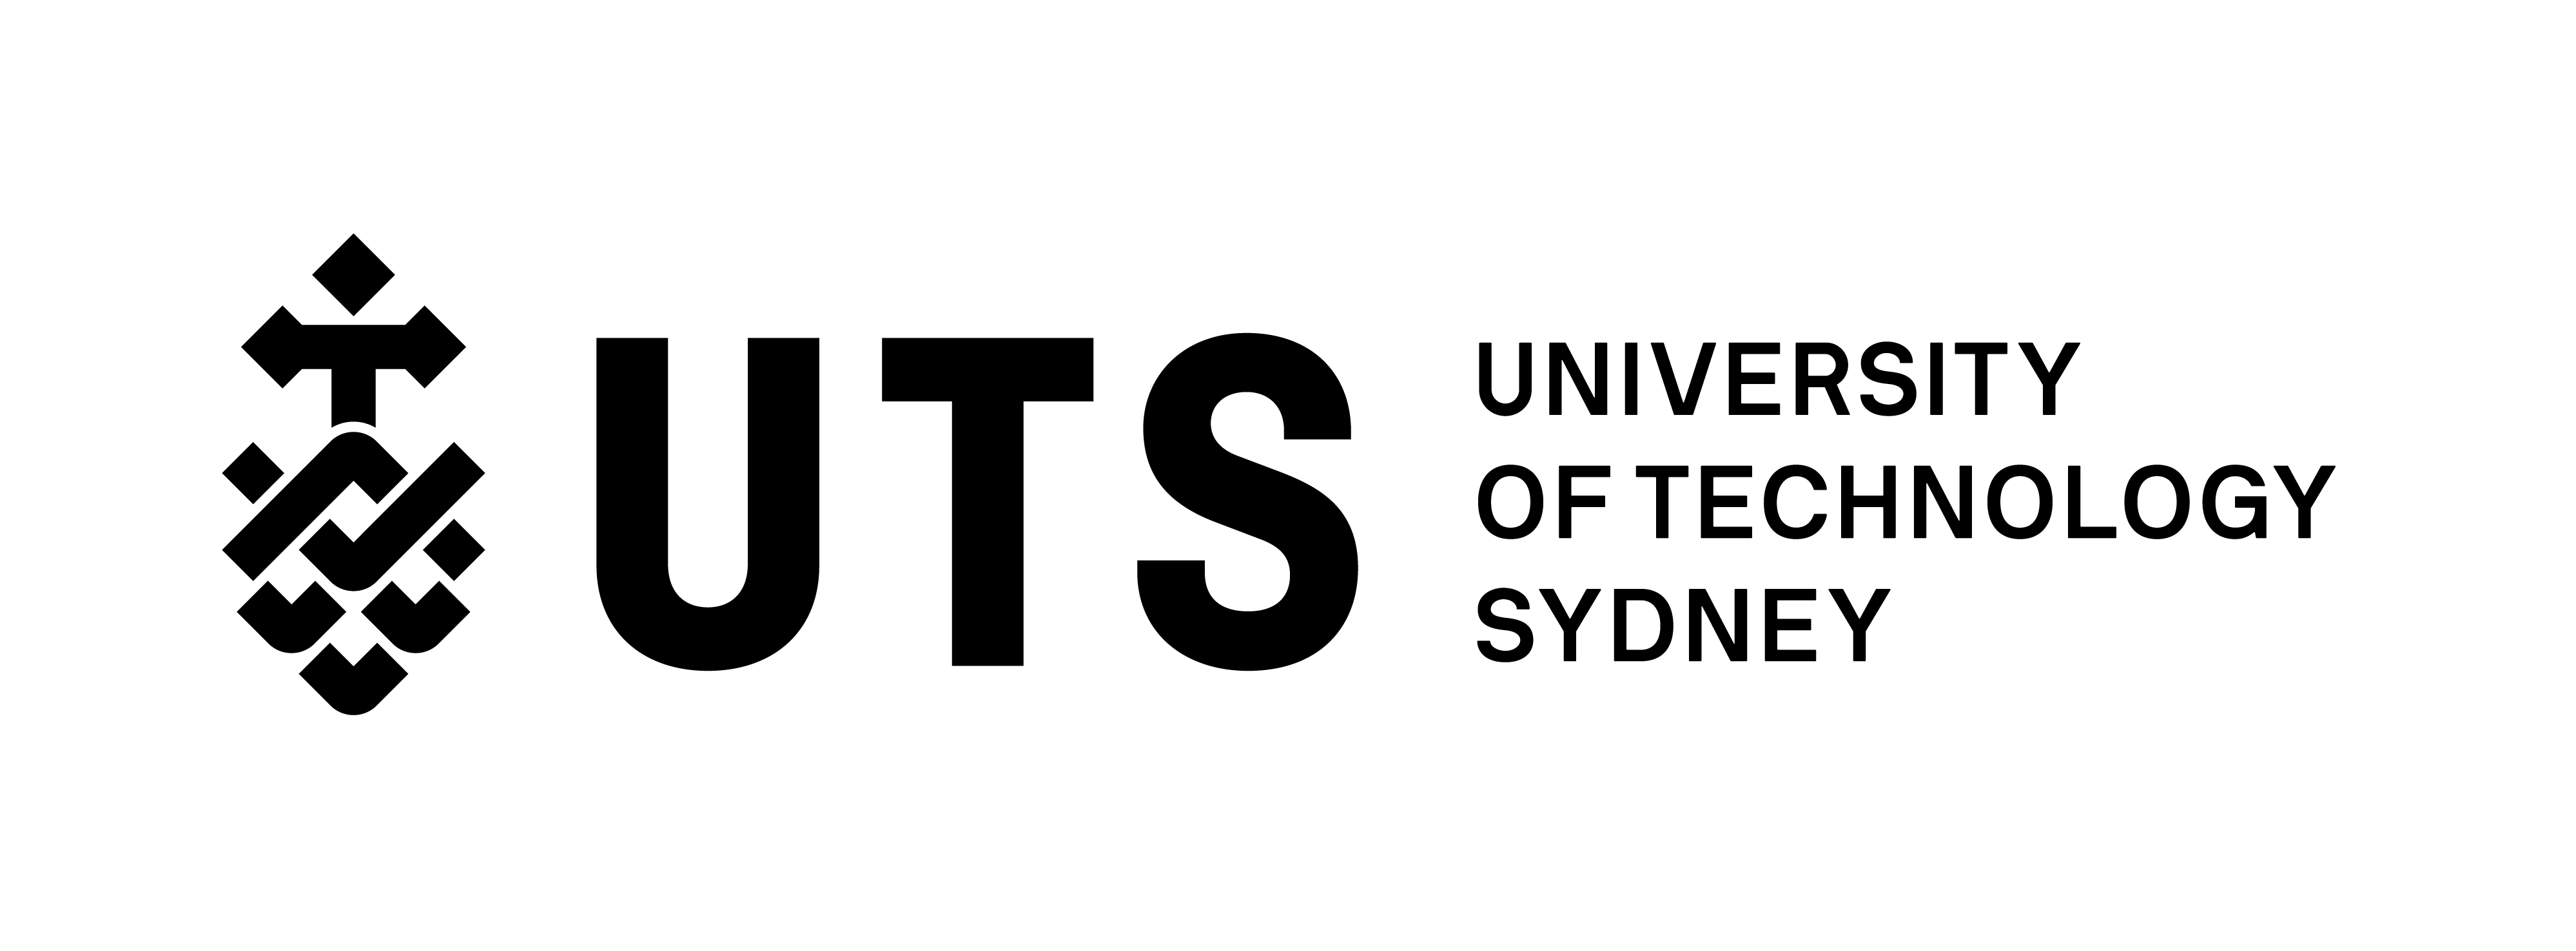 University of Technology Sydney - Bachelor of Business / Bachelor of Laws